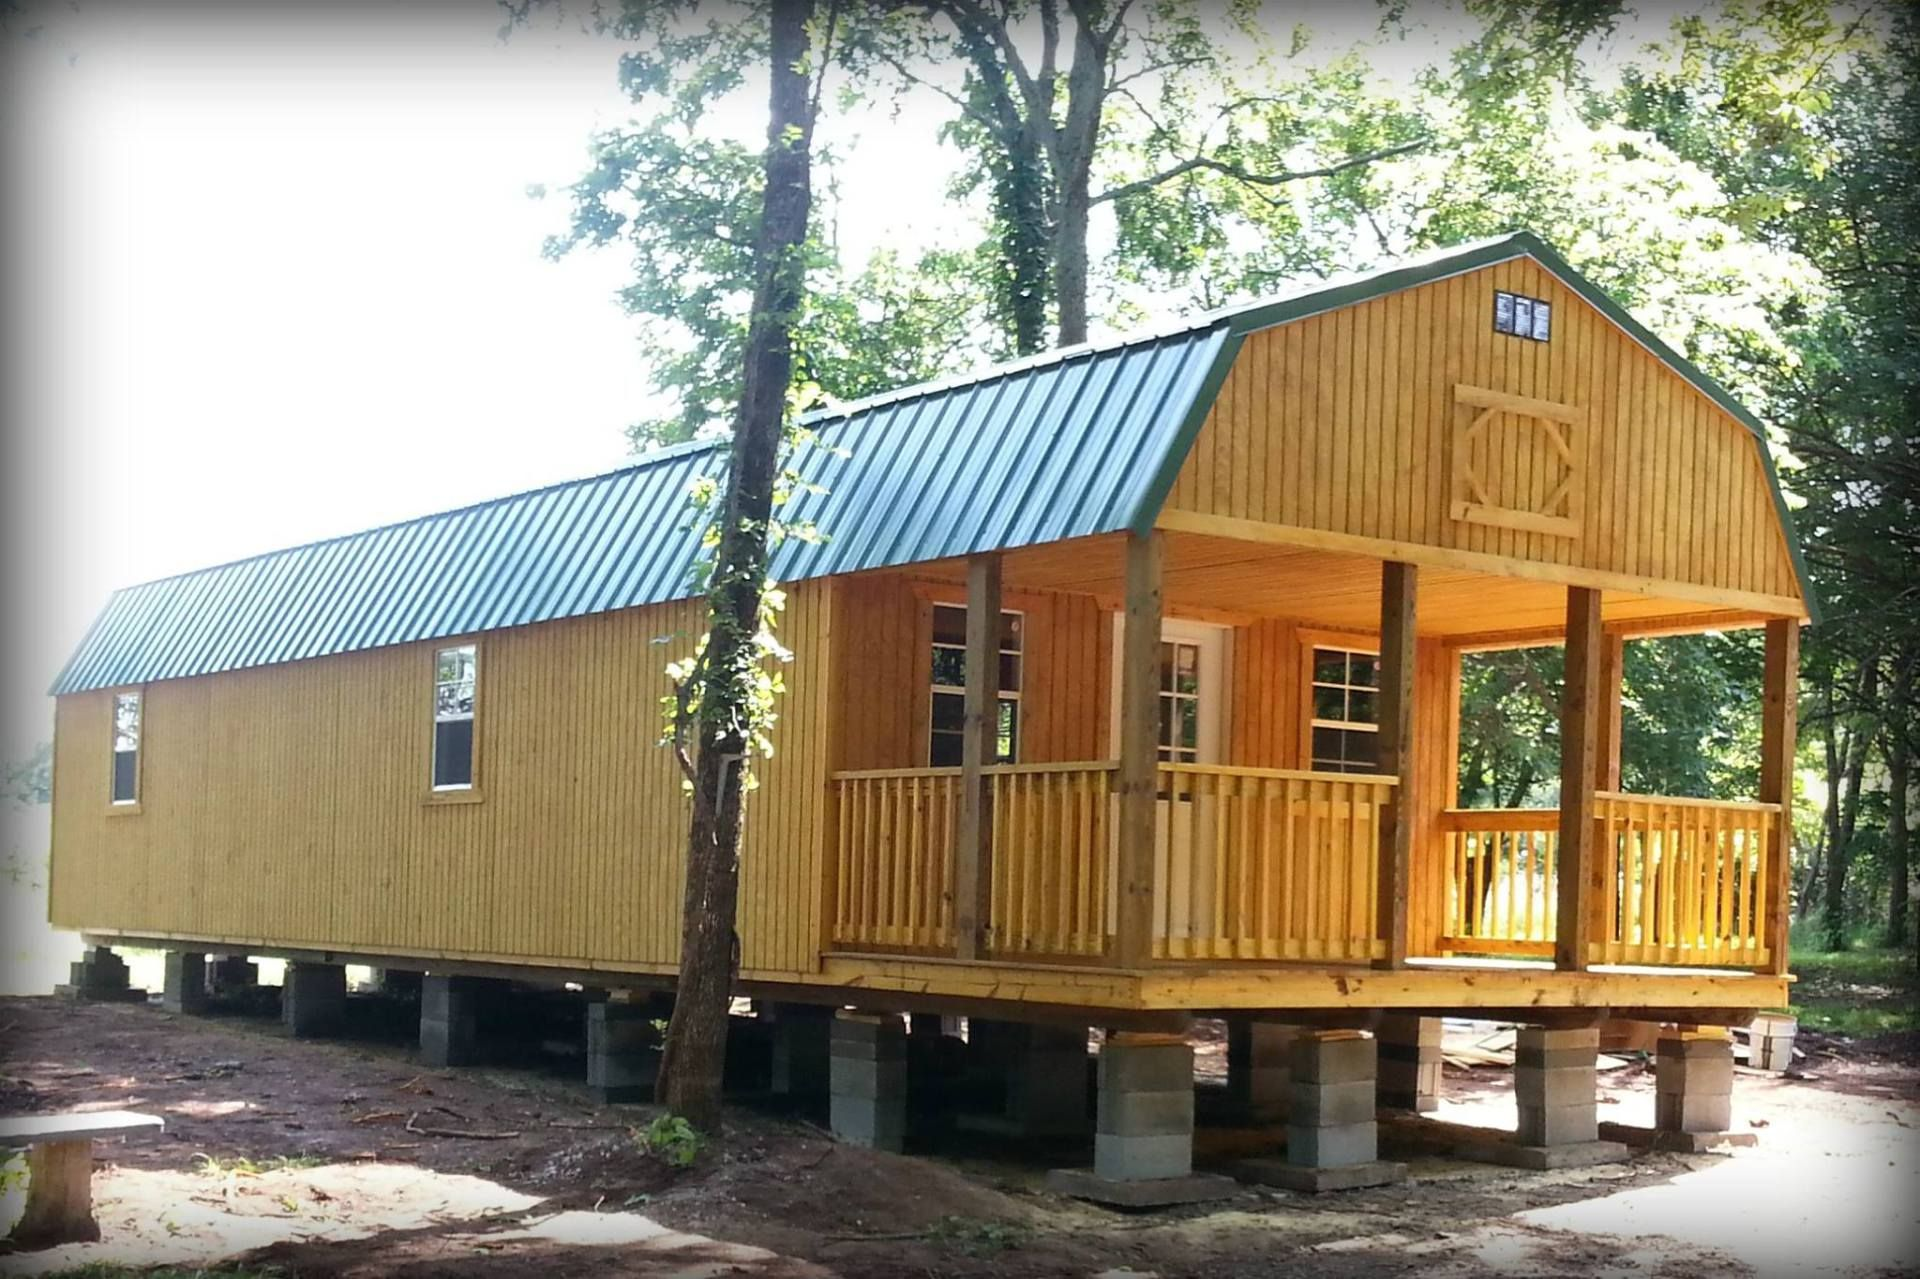 Portable Buildings for Sale | Shed to tiny house, Portable ...